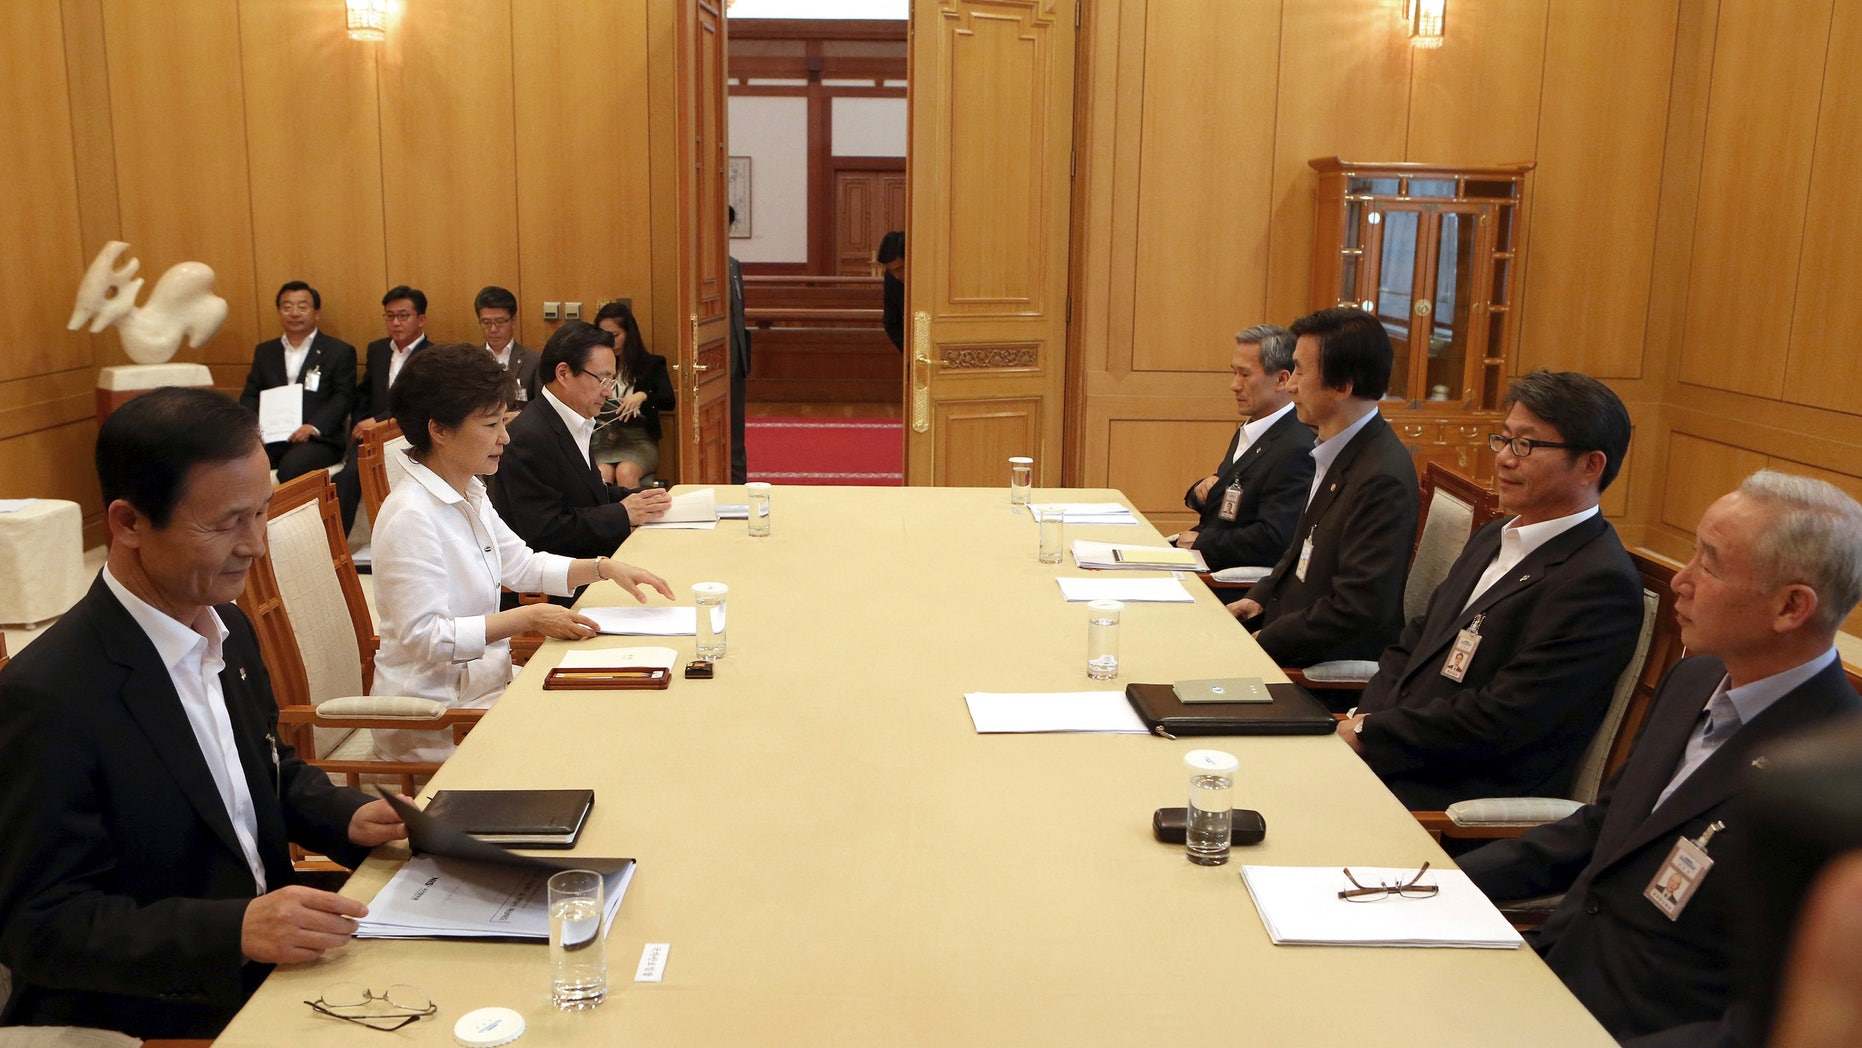 June 10, 2013 - South Korean President Park Geun-hye, 2nd  from left, presides over a security meeting to discuss the upcoming South and North Korea talks at the presidential house in Seoul, South Korea.